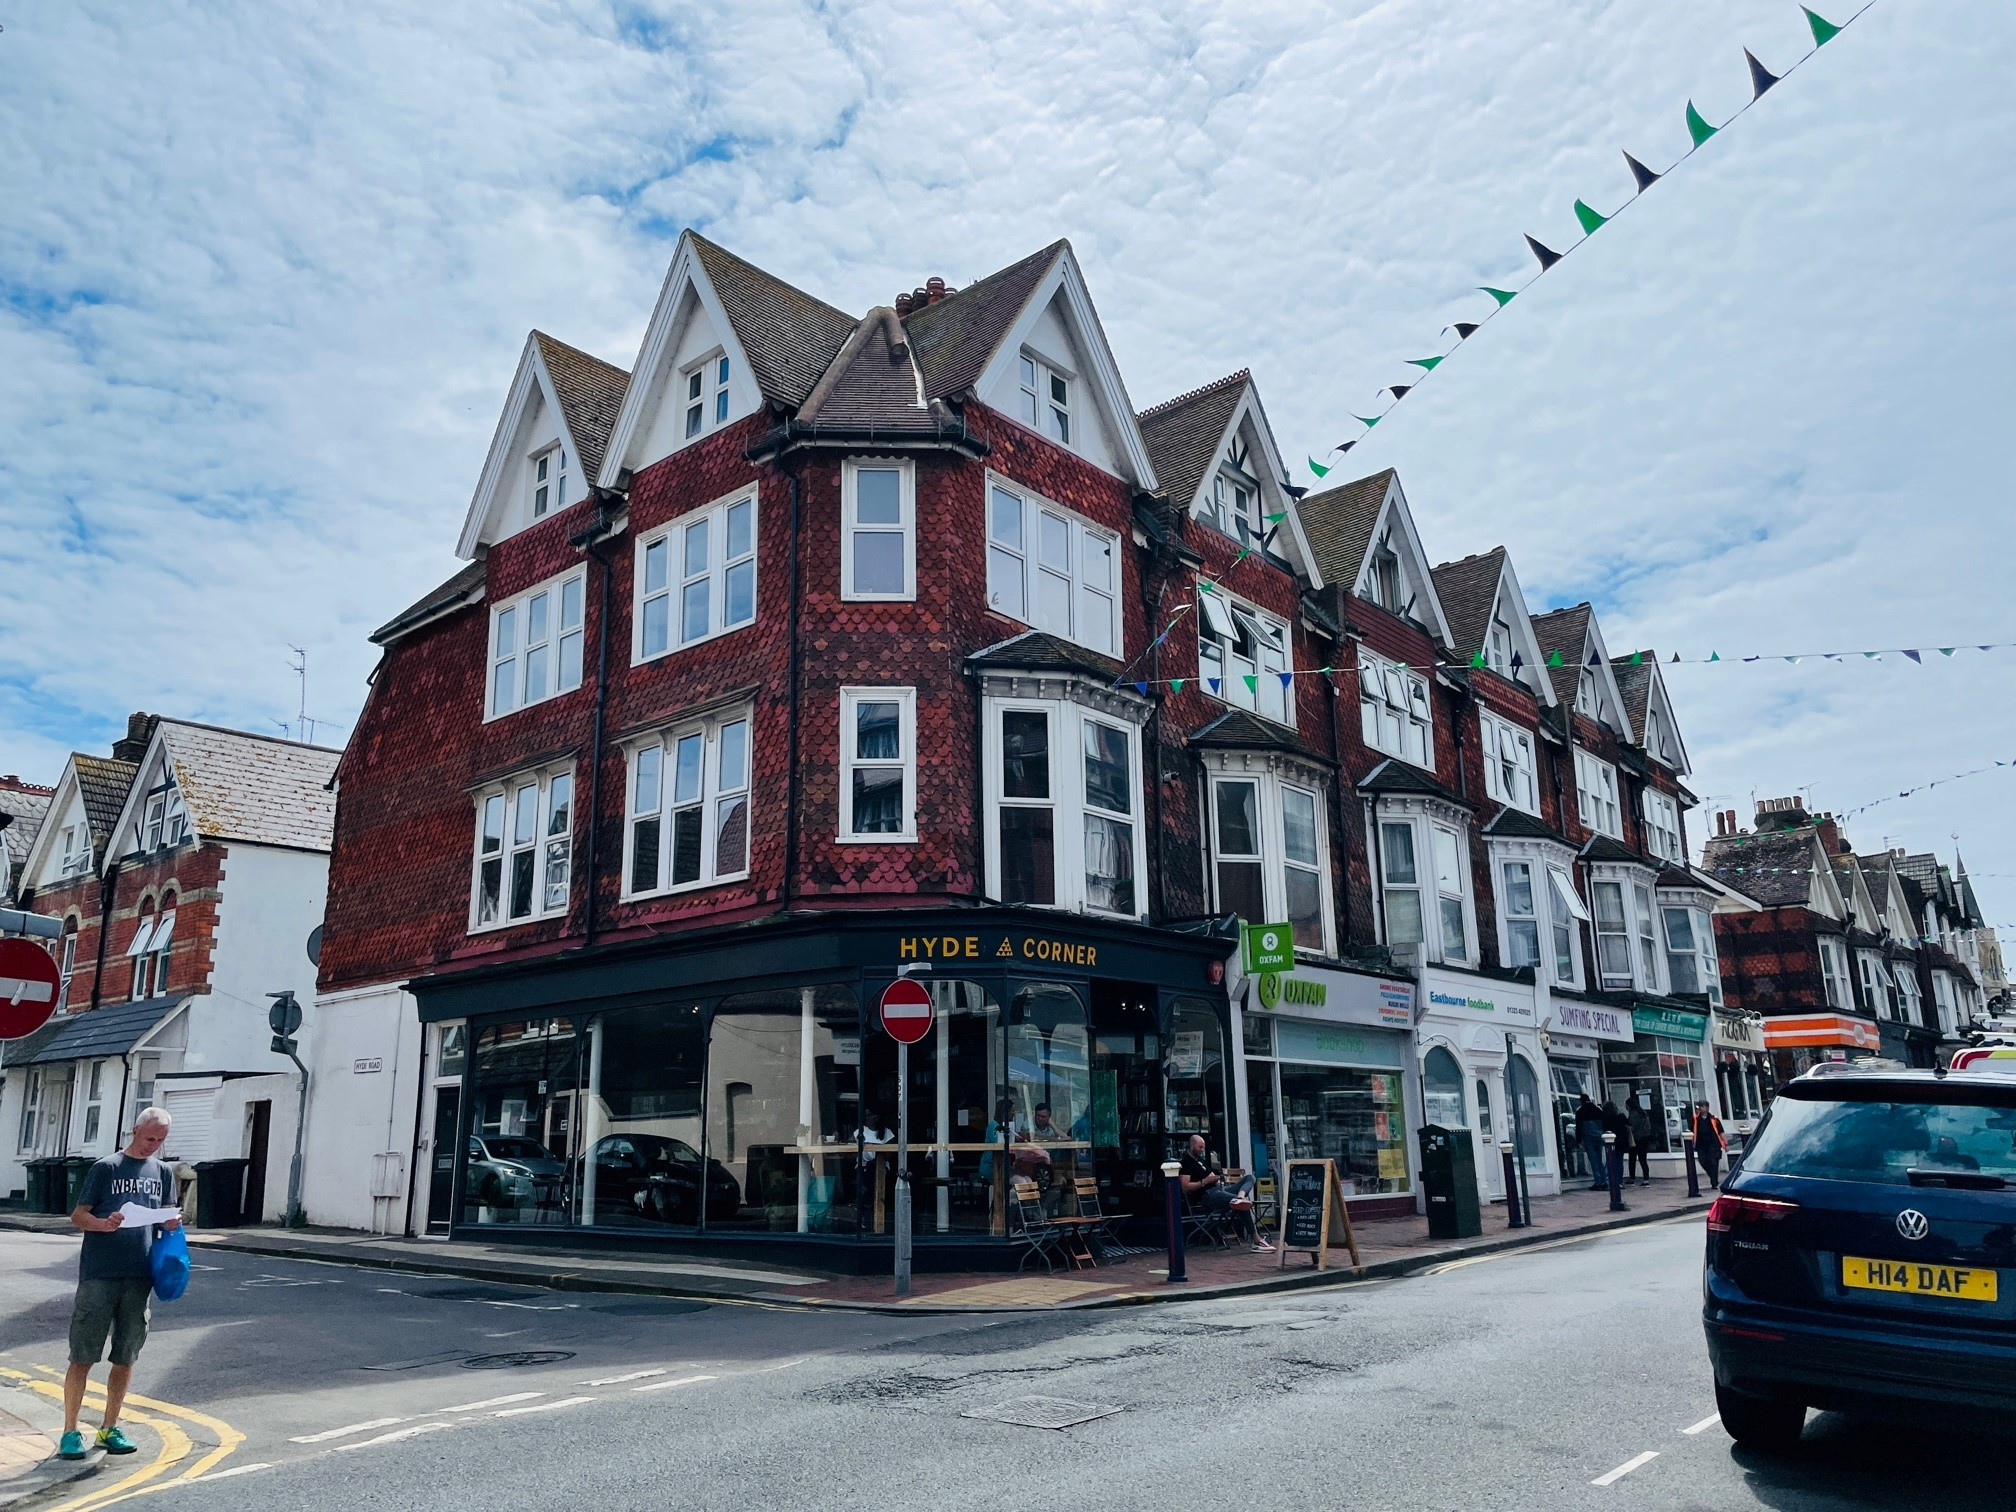 Grove Road, Eastbourne, East Sussex, BN21 4TY